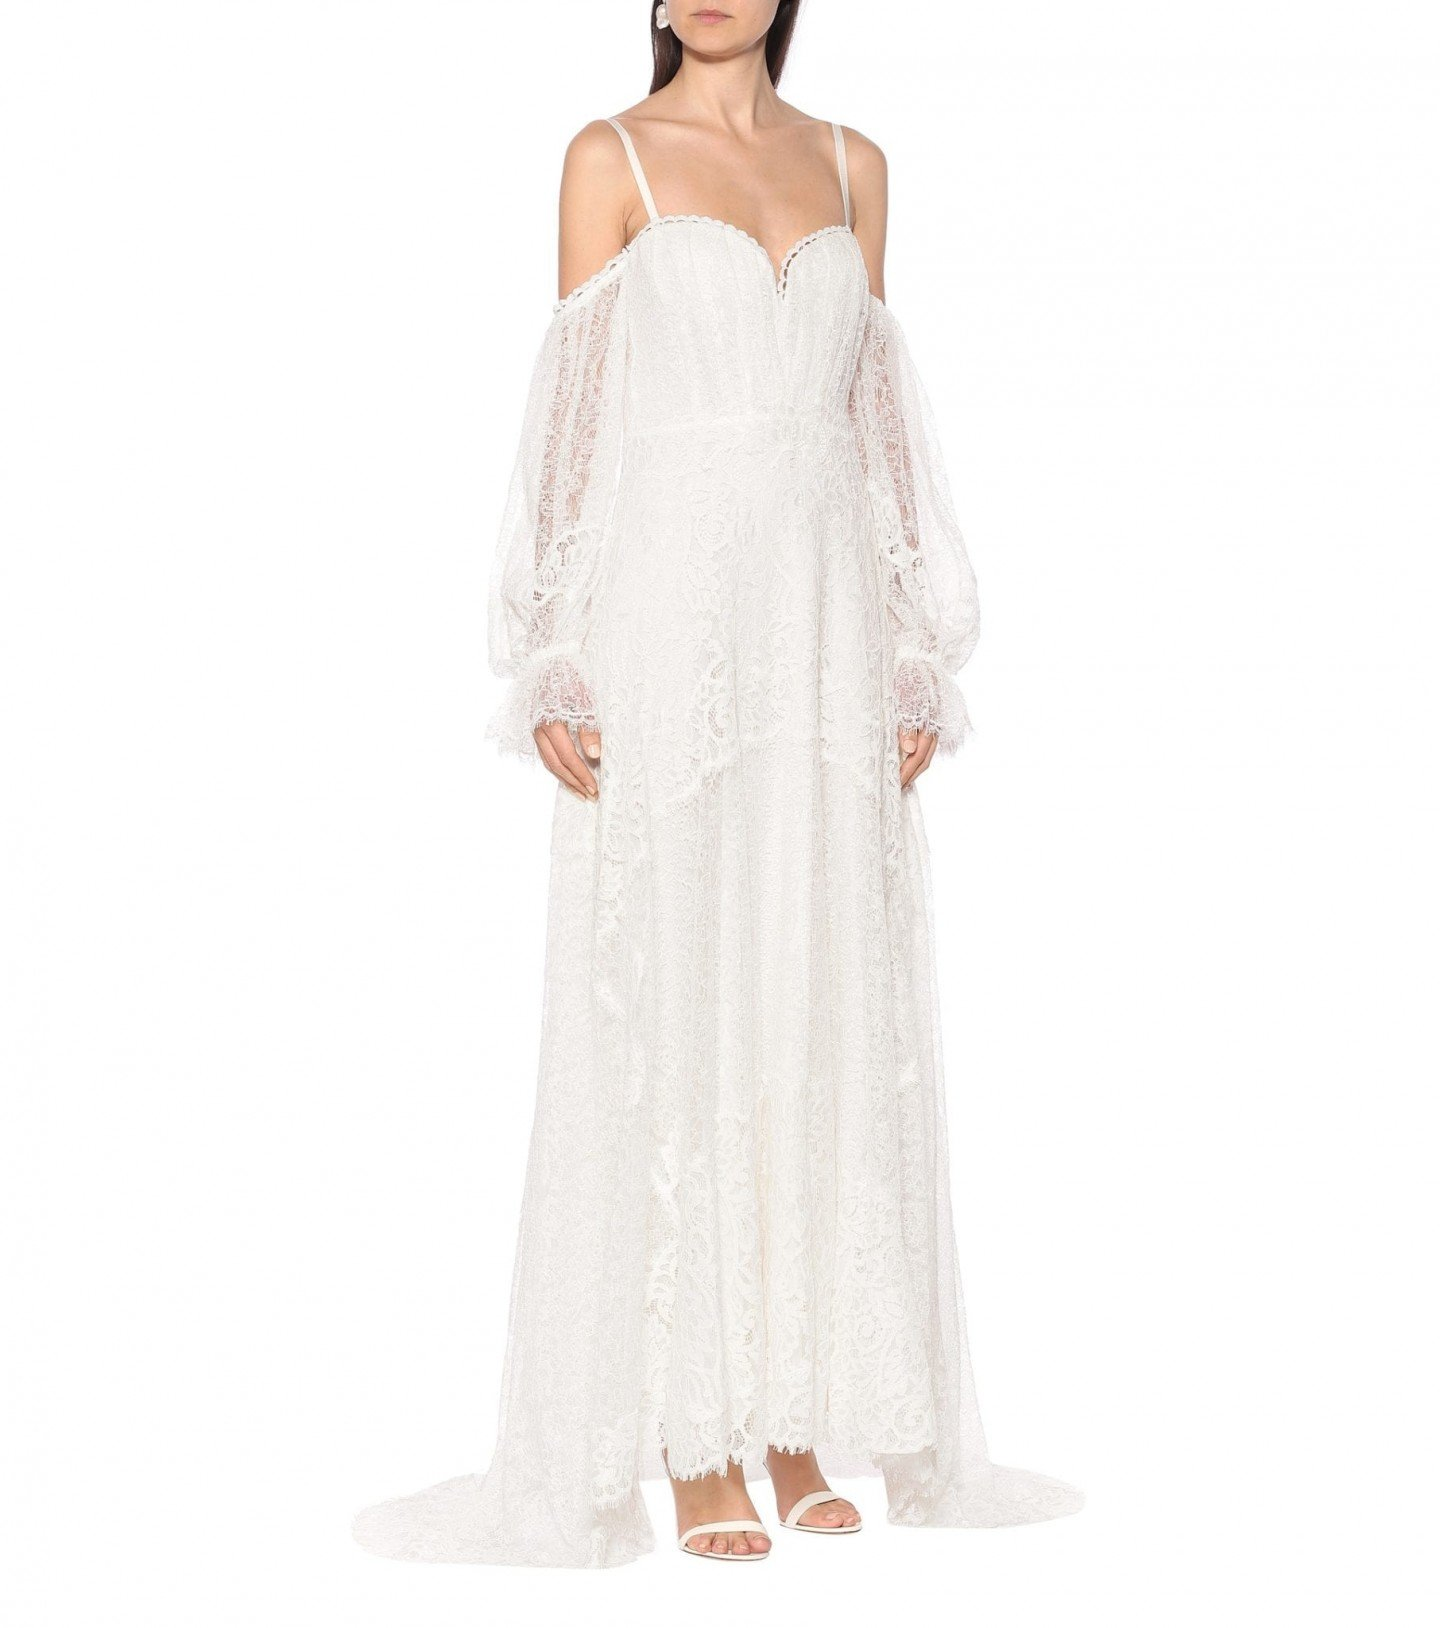 JONATHAN SIMKHAI Floral-lace Maxi Dress